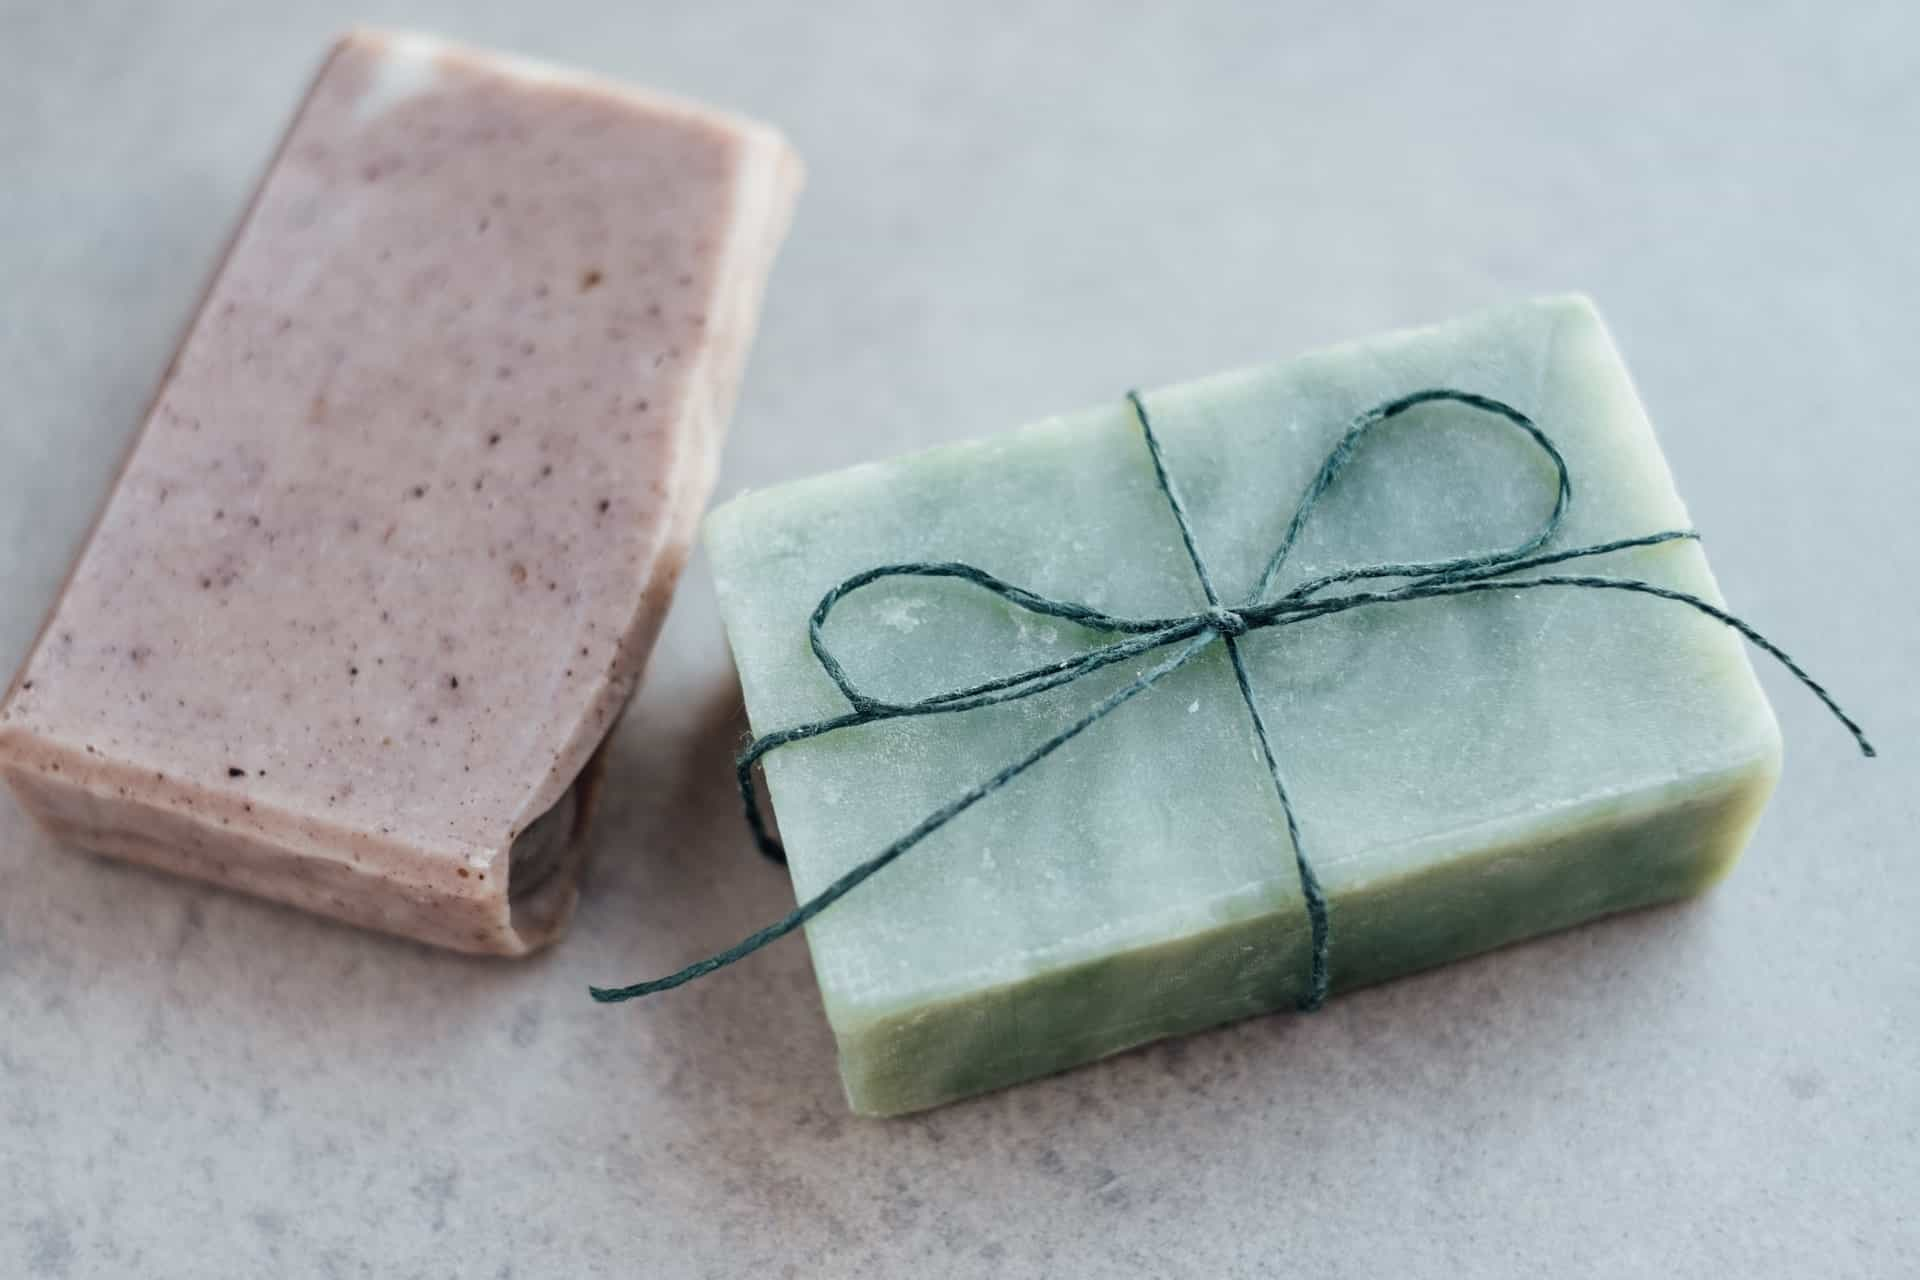 solid shampoo bars in pink and brown on a light blue surface